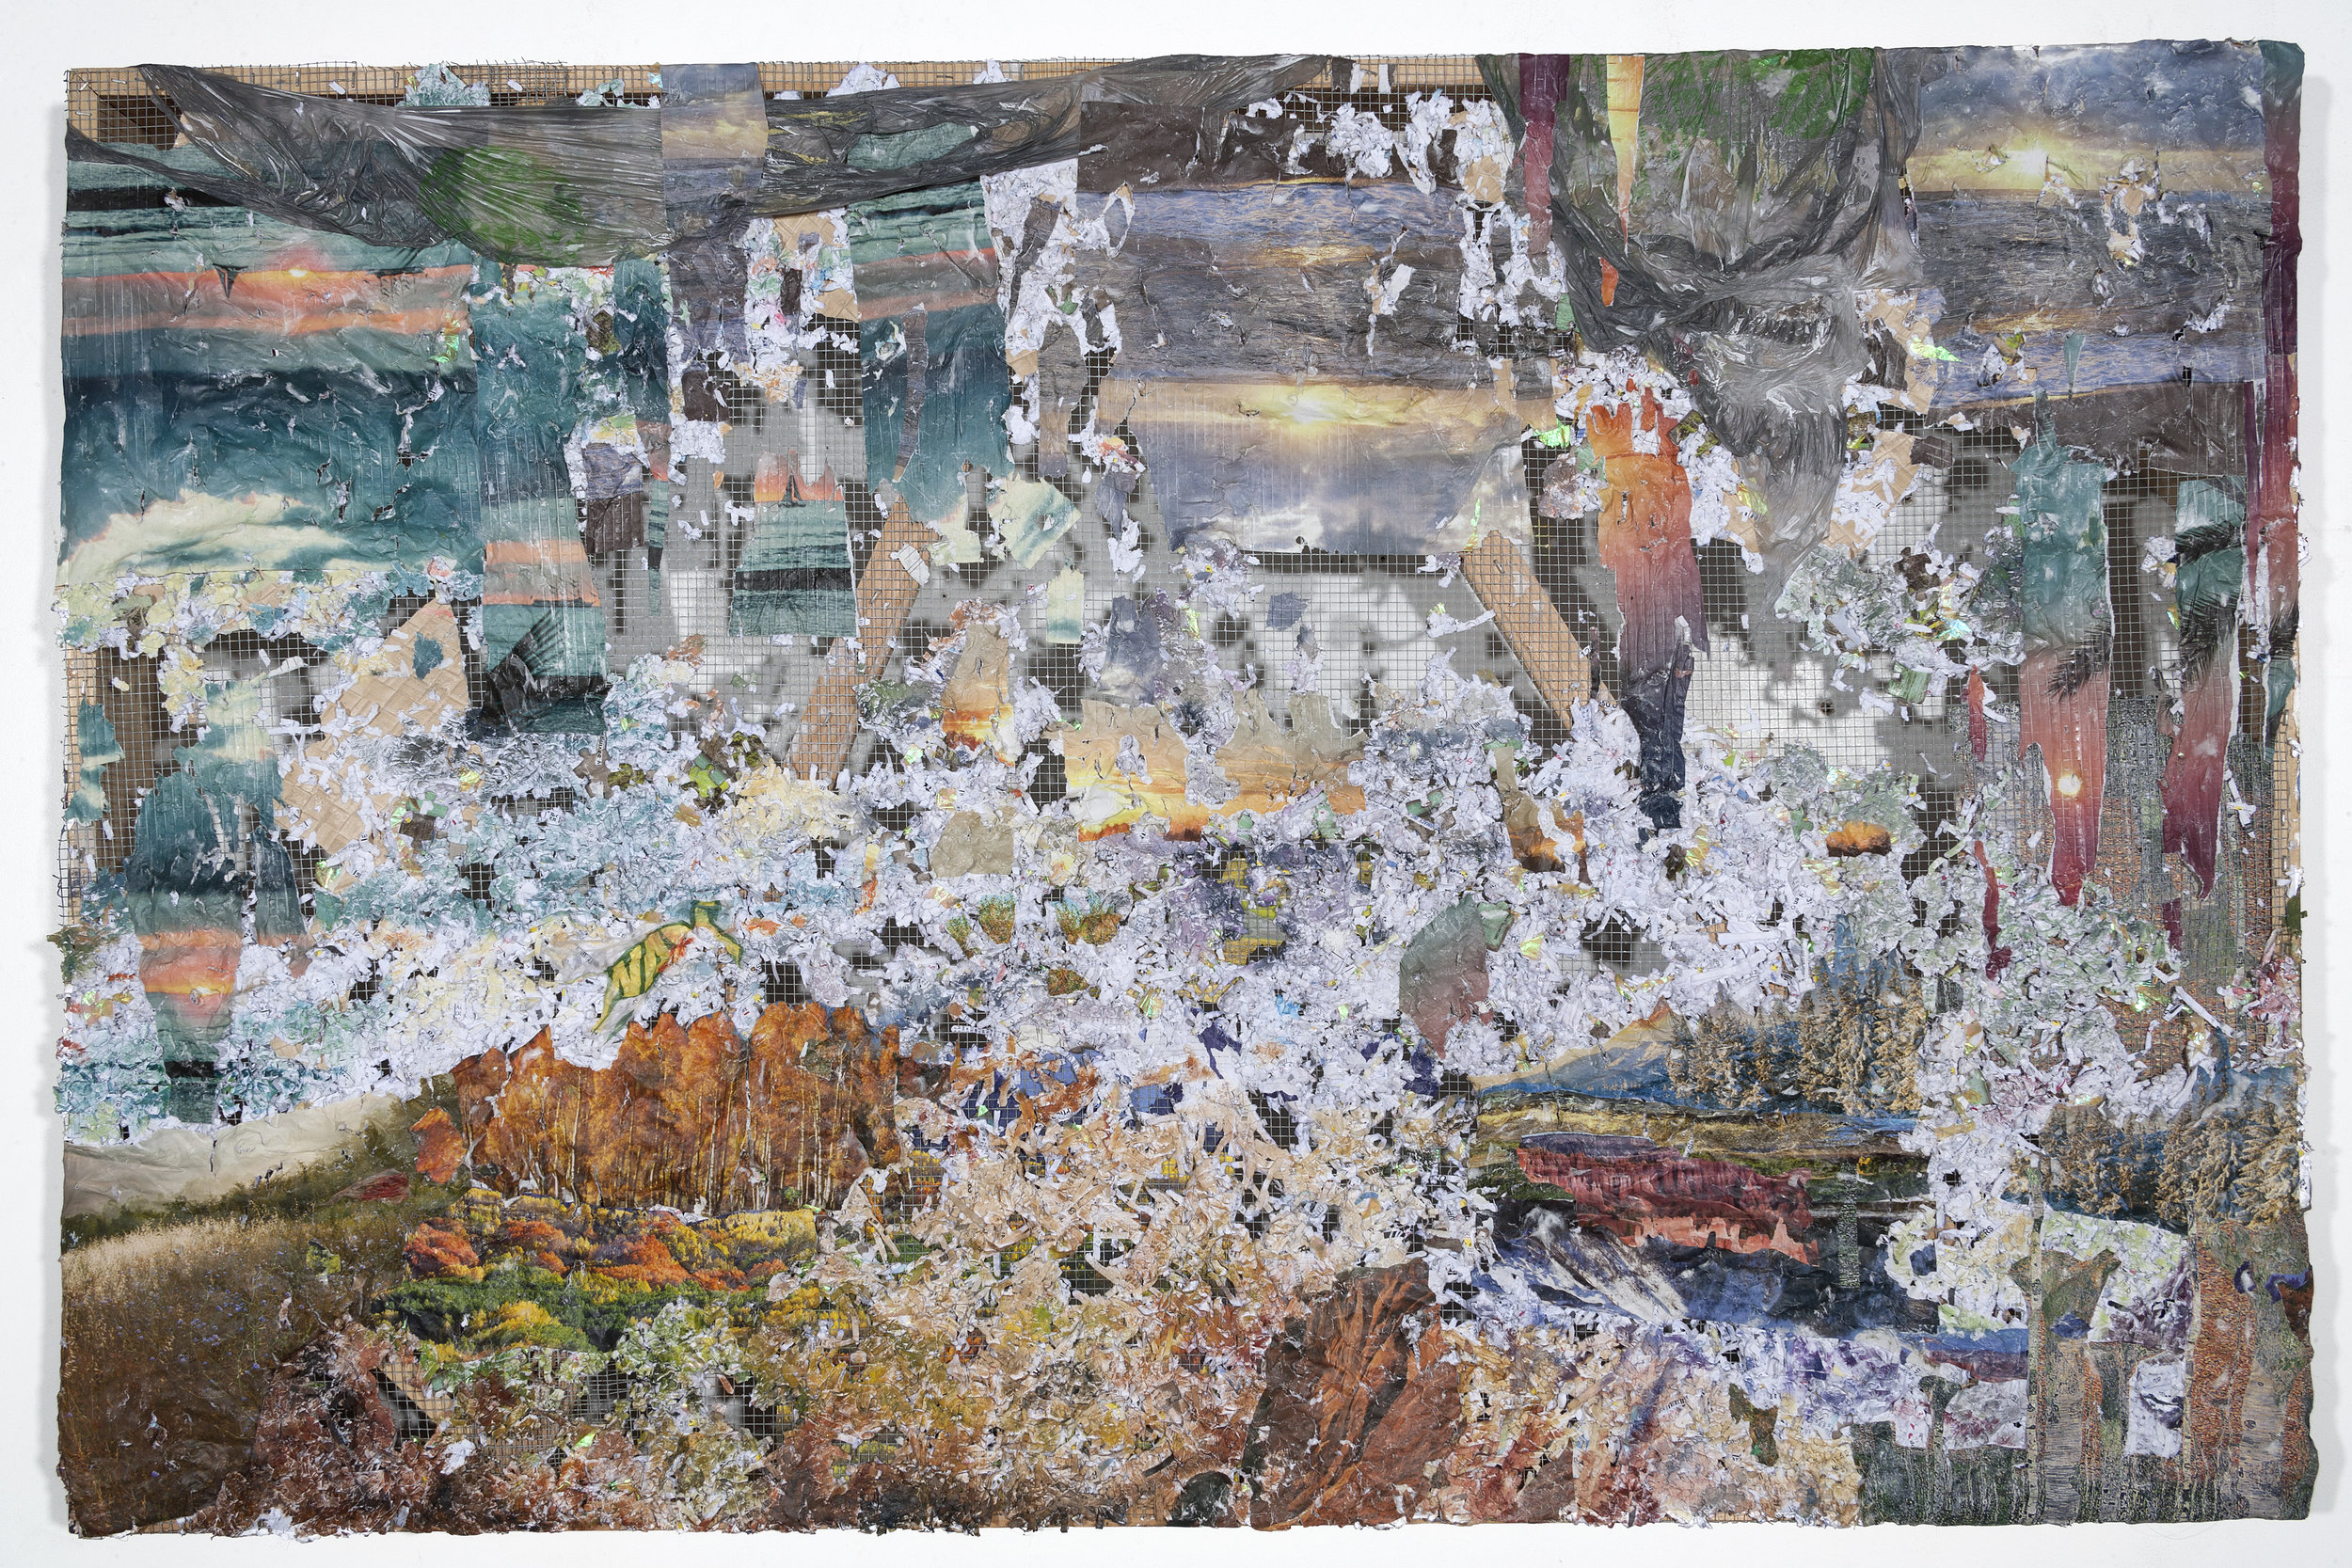 How Do I Raise the Ground Where I Land , 2017,Medical records, Banig print wallpaper, puzzle pieces, nature calendars, Dollar Tree and Subway bag, acrylic and oil on chicken wire and wood, 38 x 60 x 4 inches